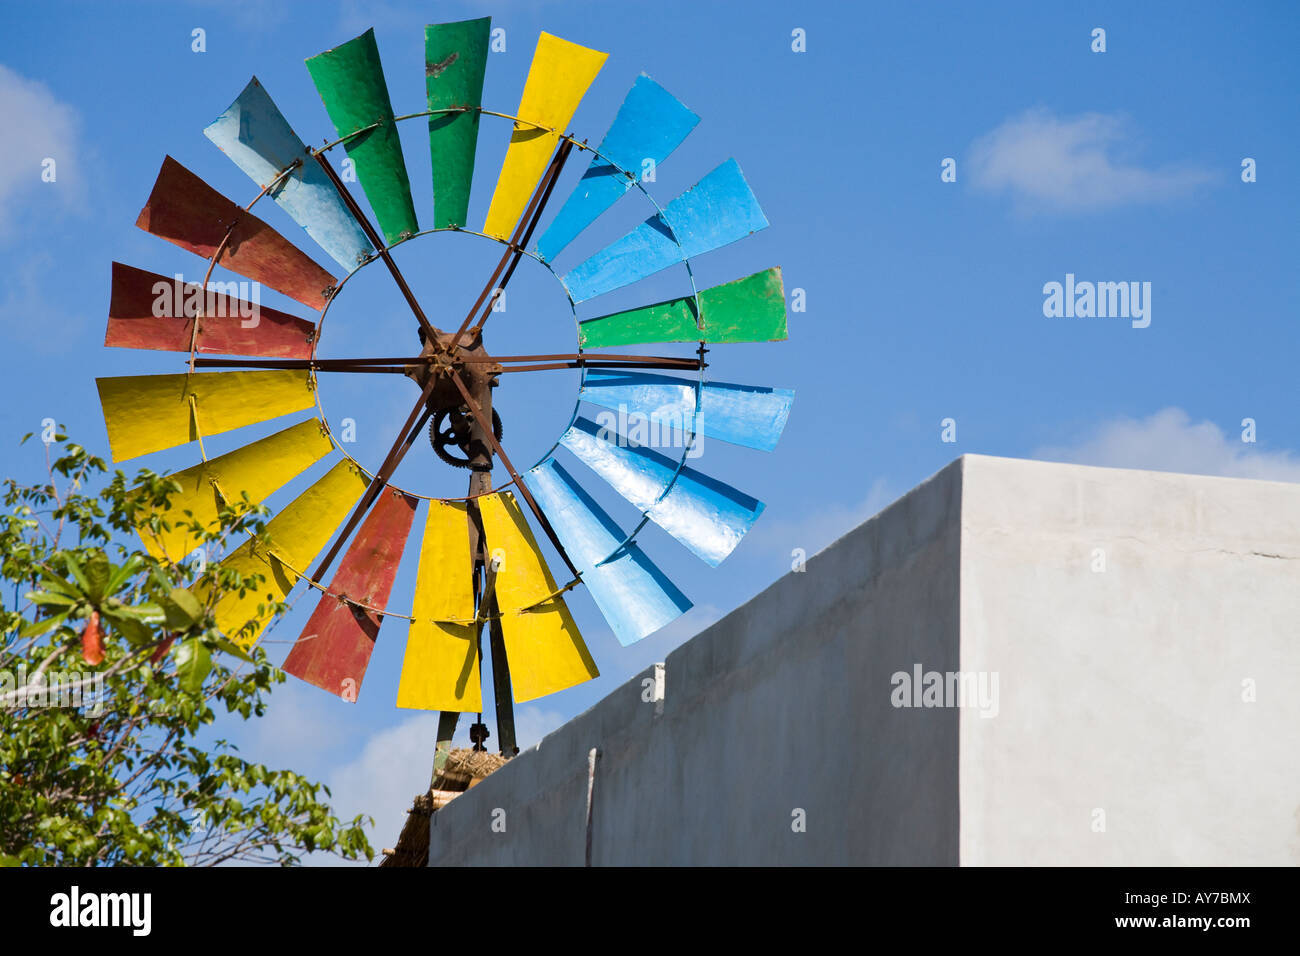 Painted Windmill An old rusted windmill rises above a plain building The vanes brightly painted different colours - Stock Image